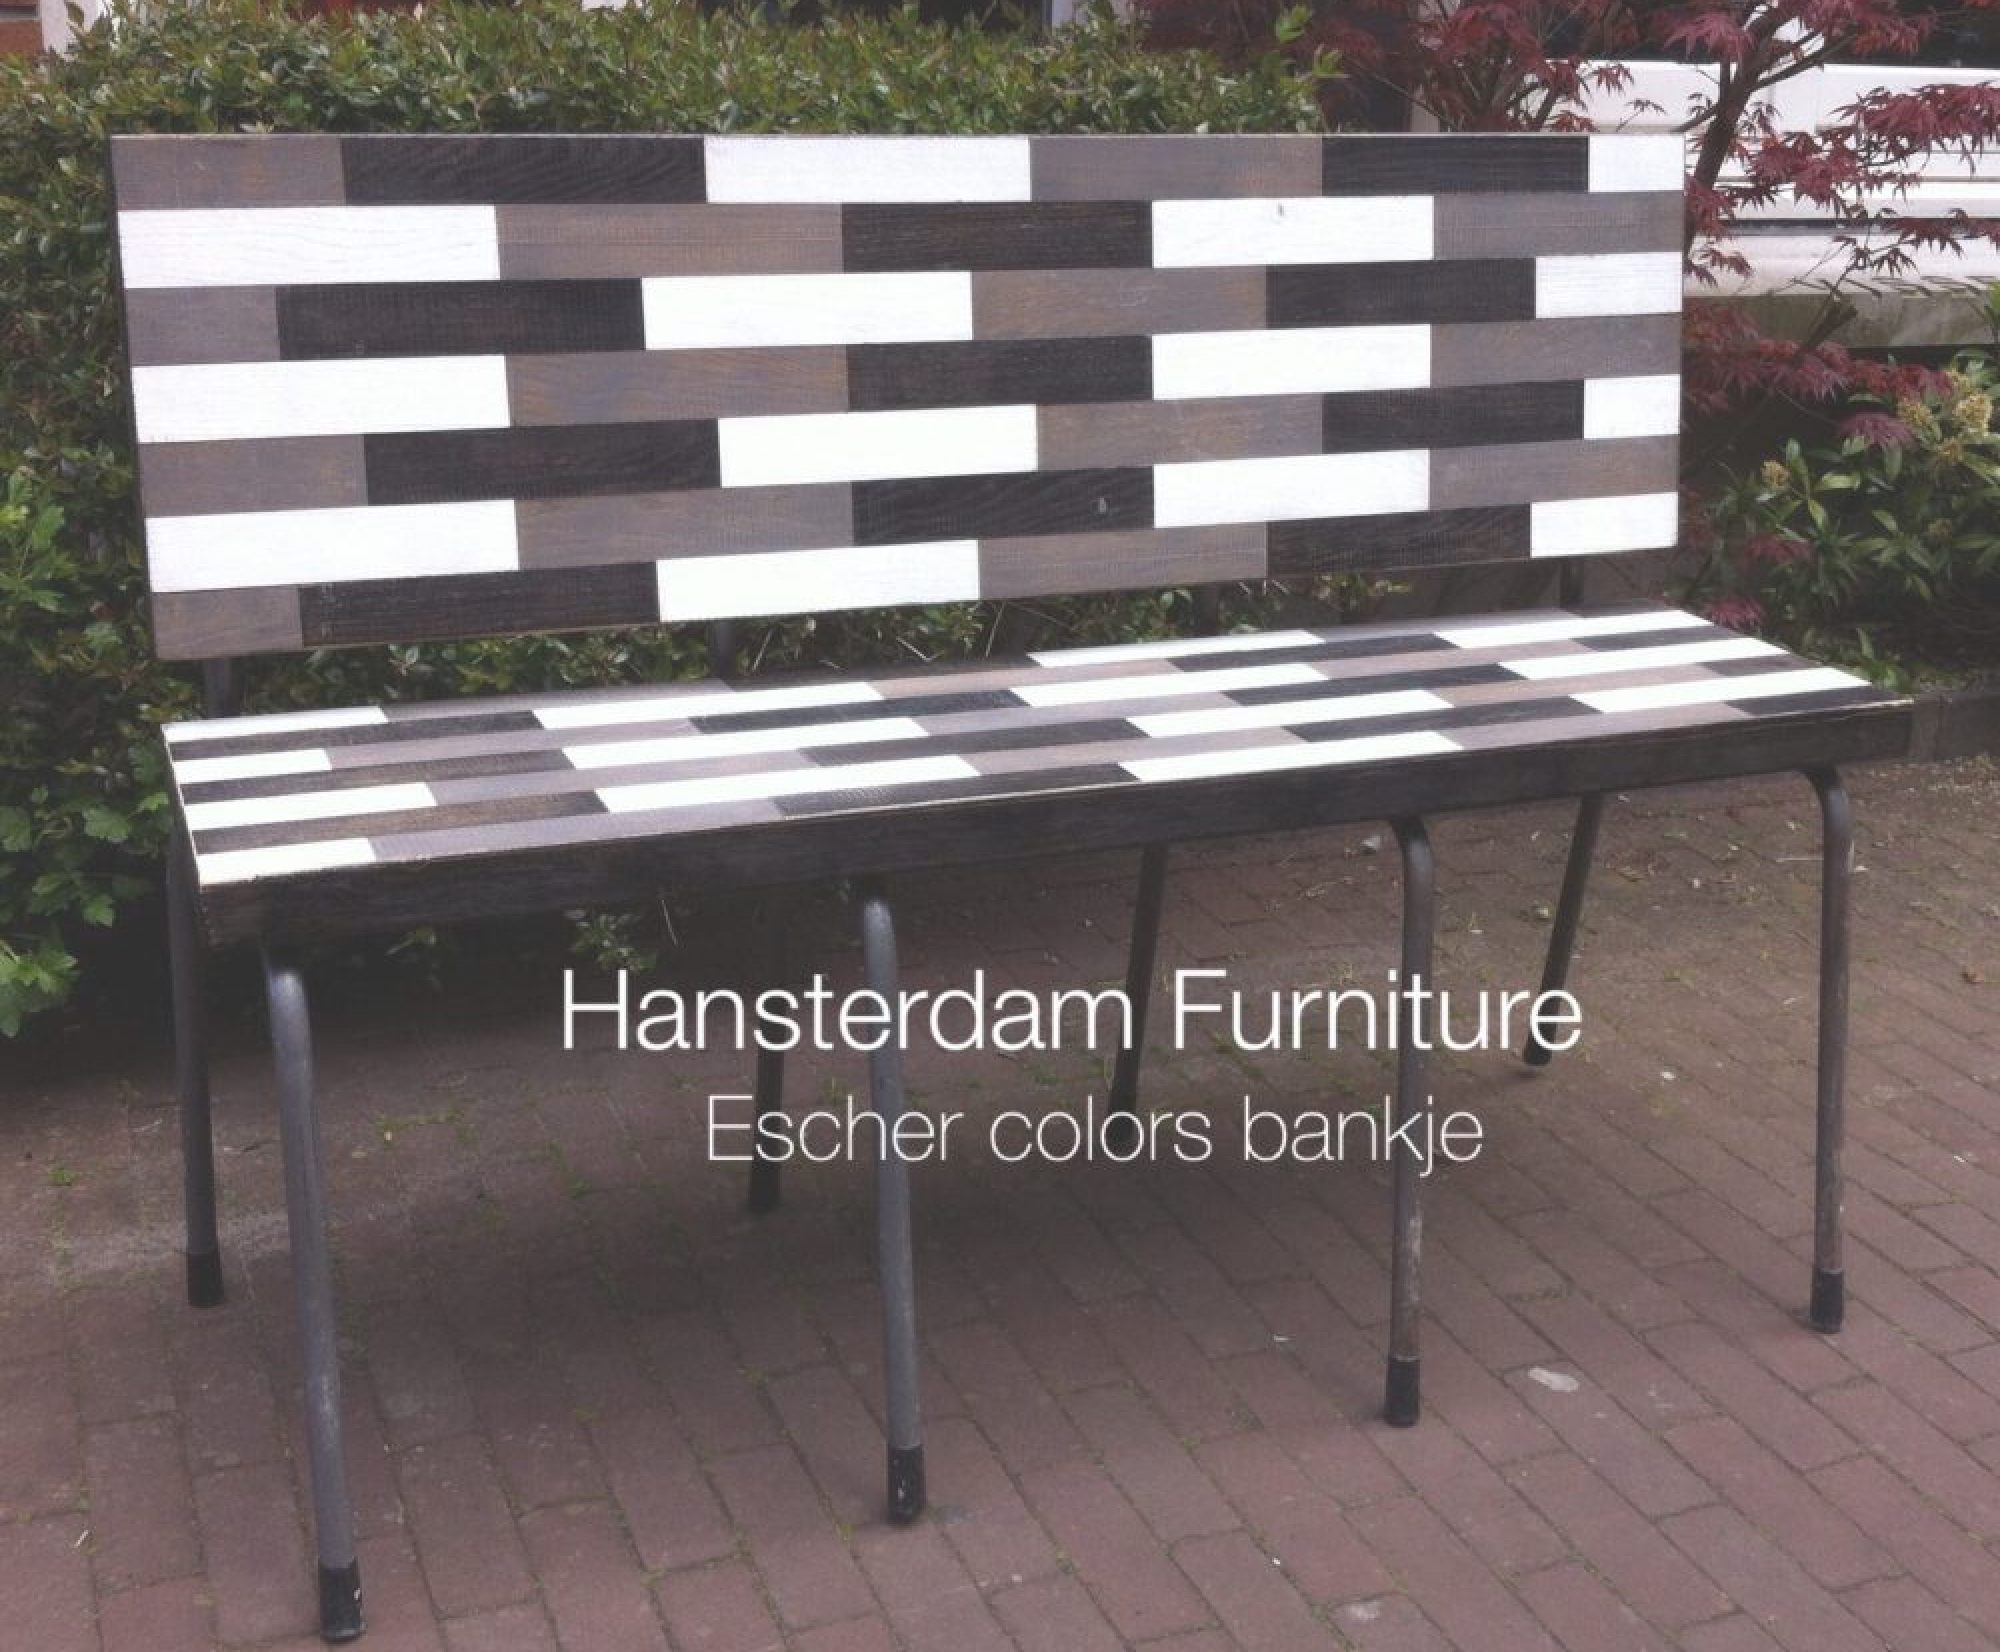 Hansterdam Furniture